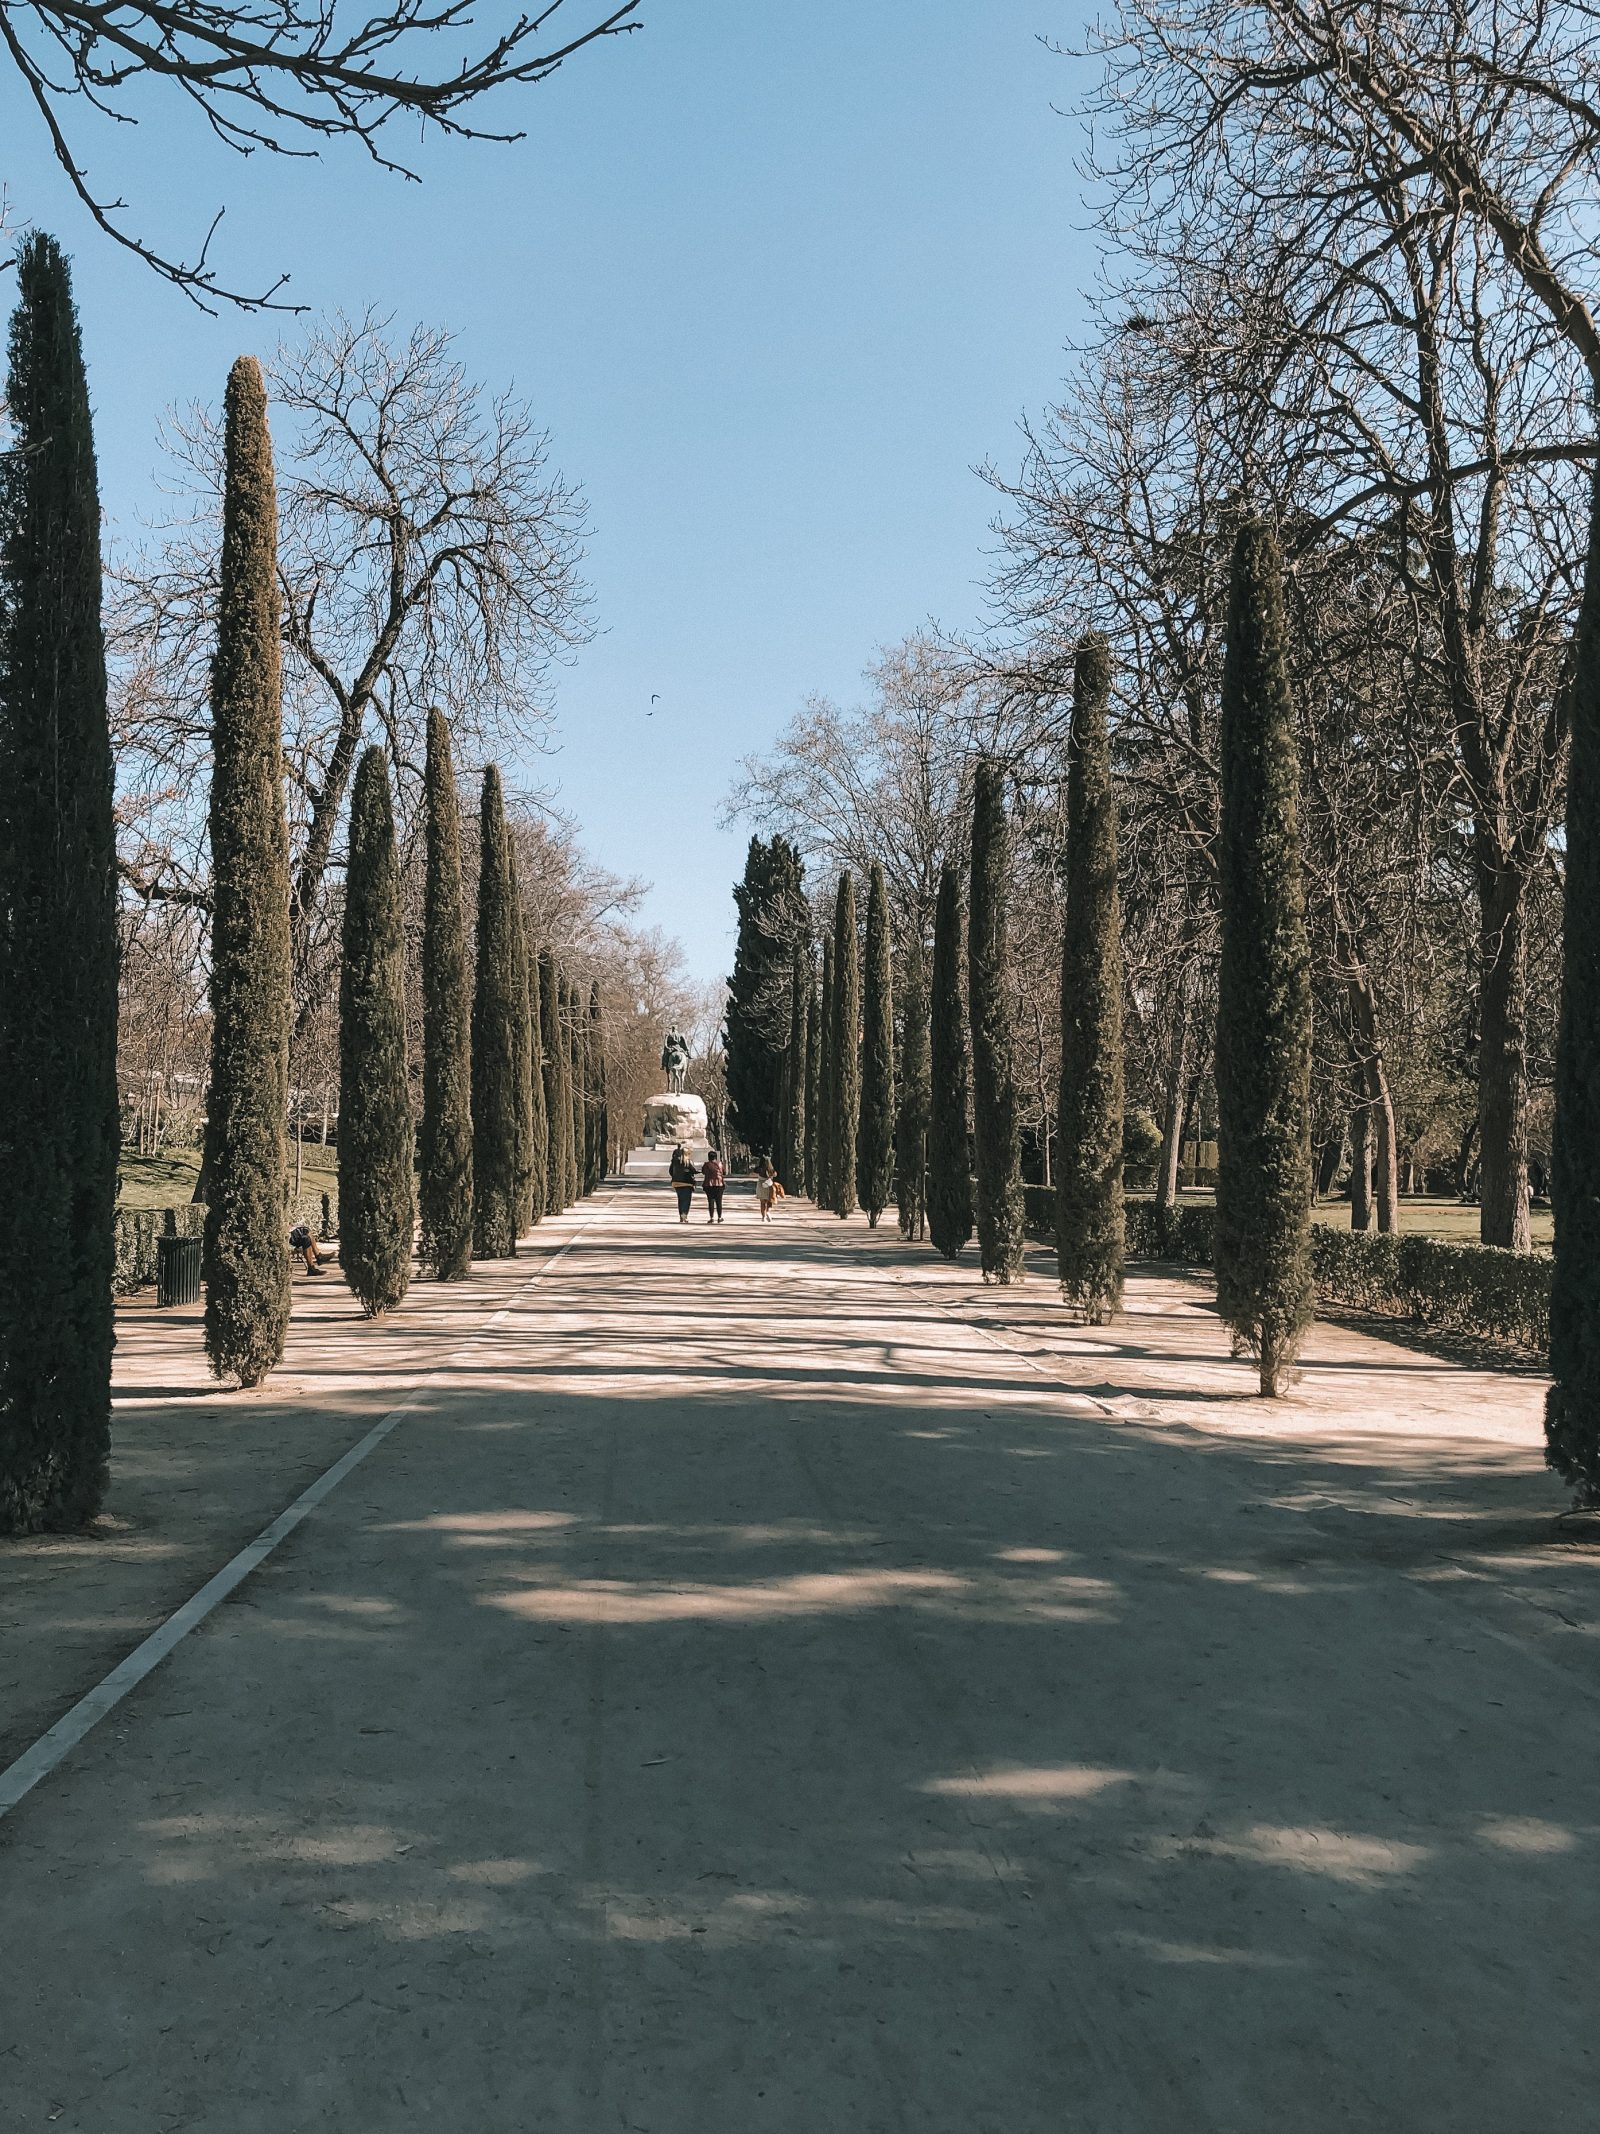 Madrid Travel Anxiety - Madrid Beautiful Park